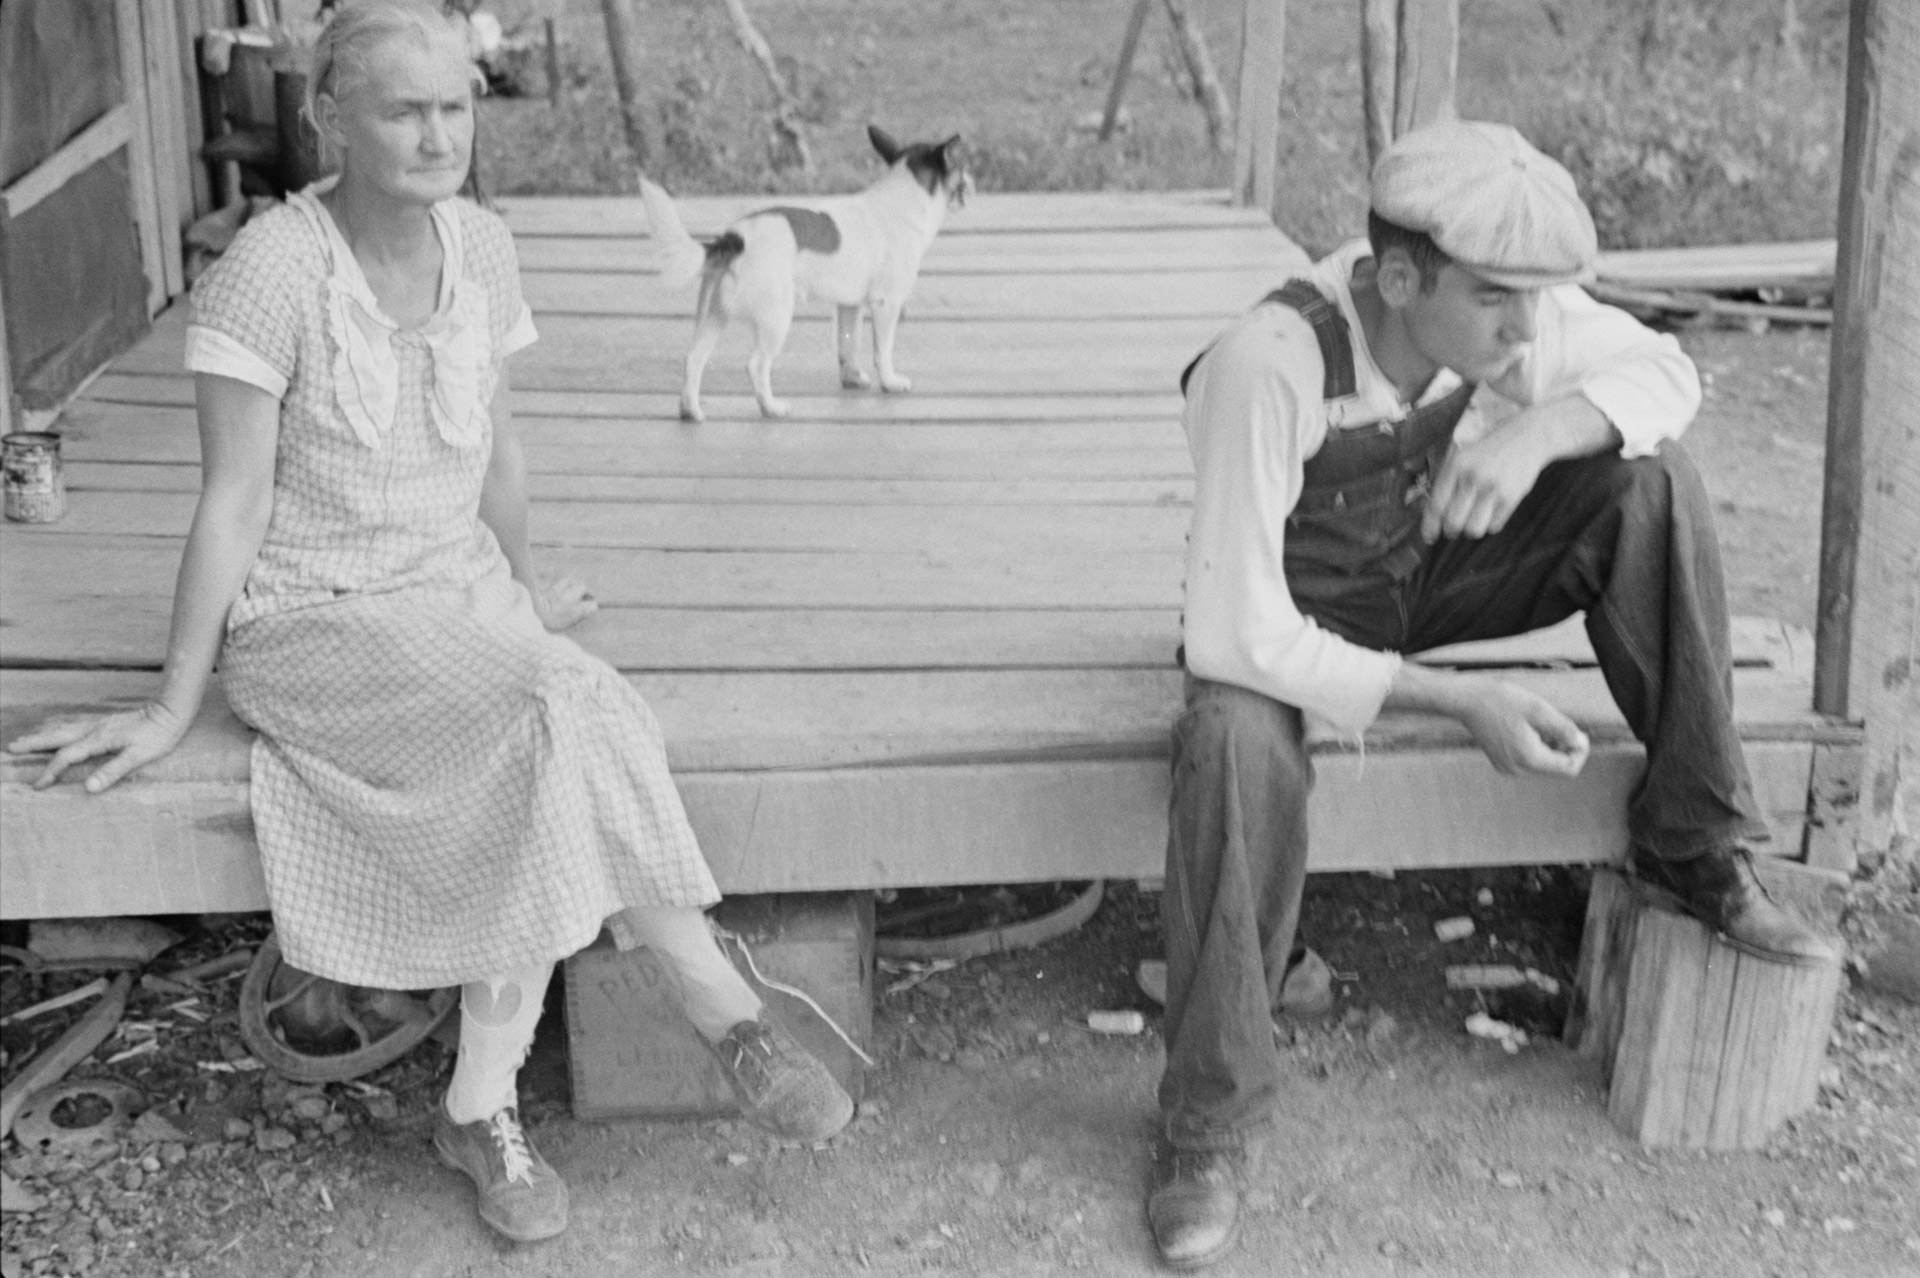 Sharecropper family members sit on their porch, photographed by Ben Shahn in 1935 at Dyess.